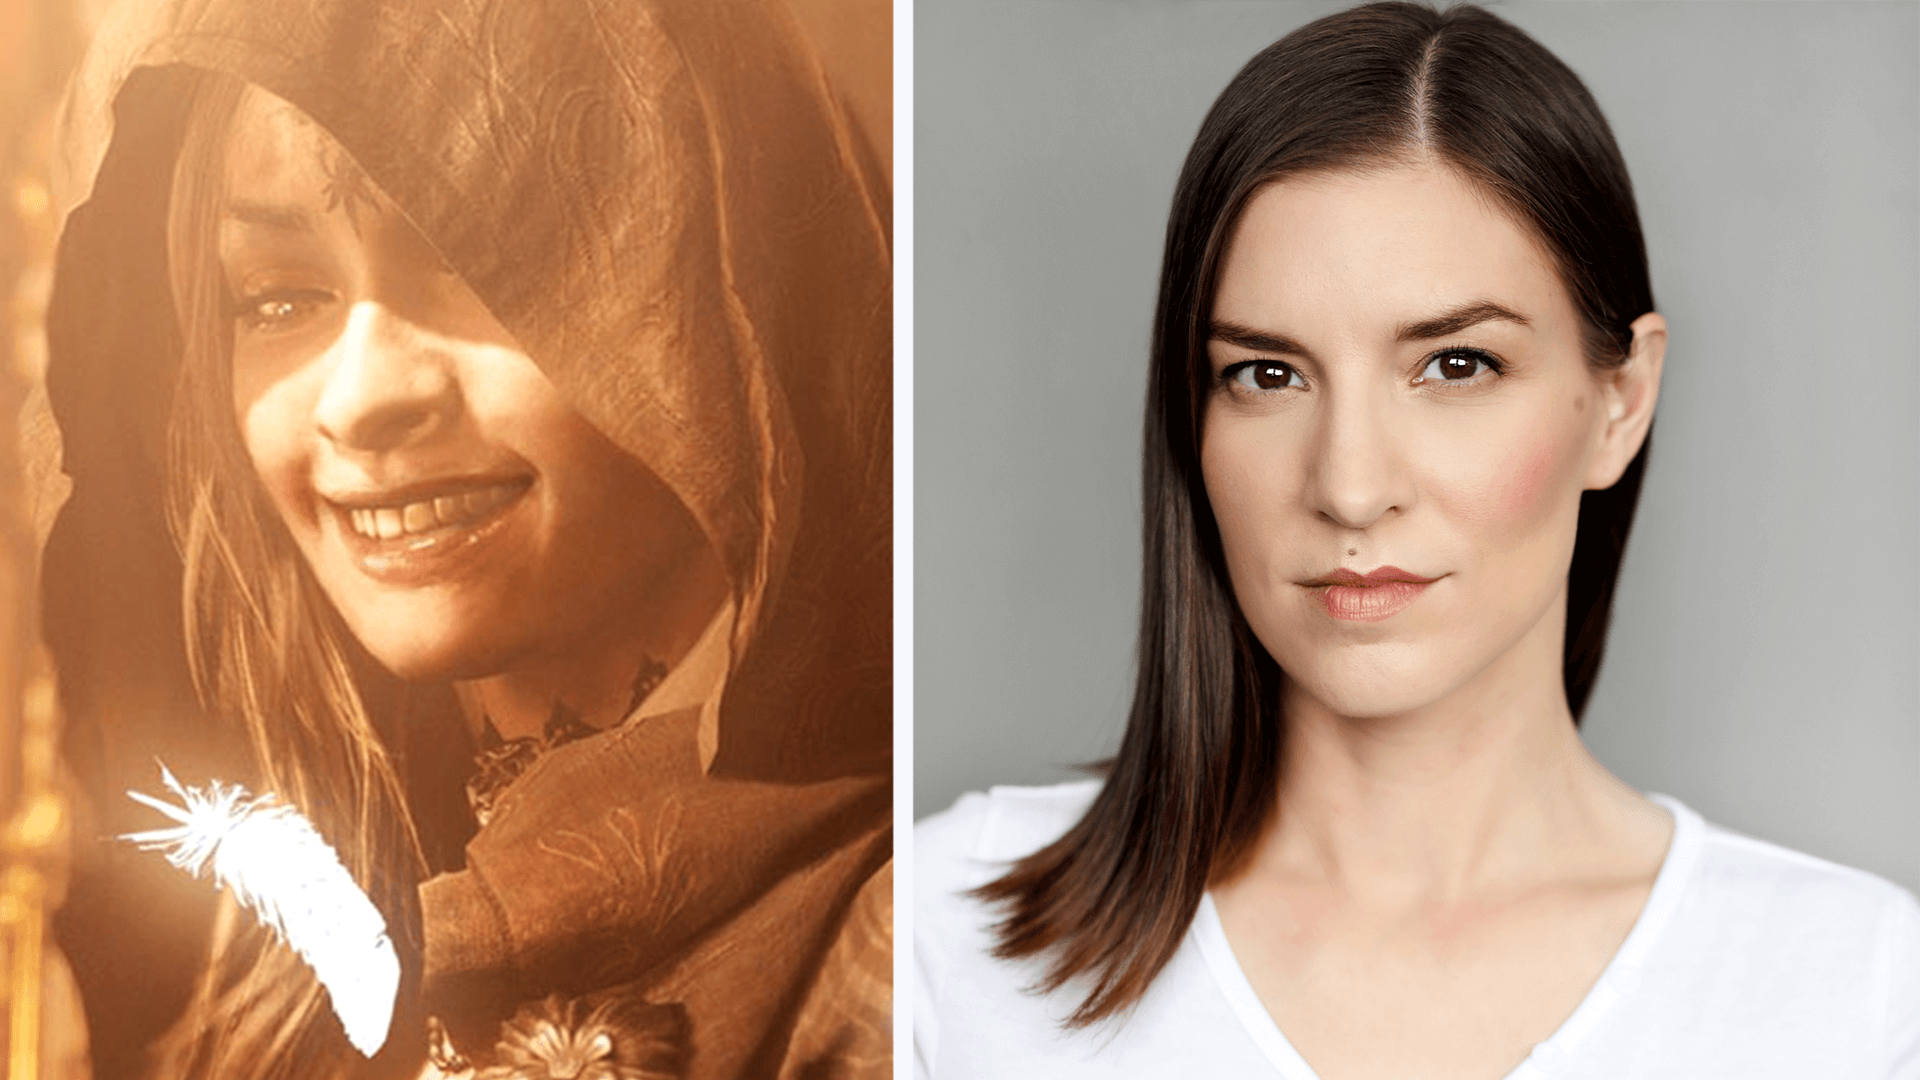 Jeanette Maus: Resident Evil Village Actress Passes At 39